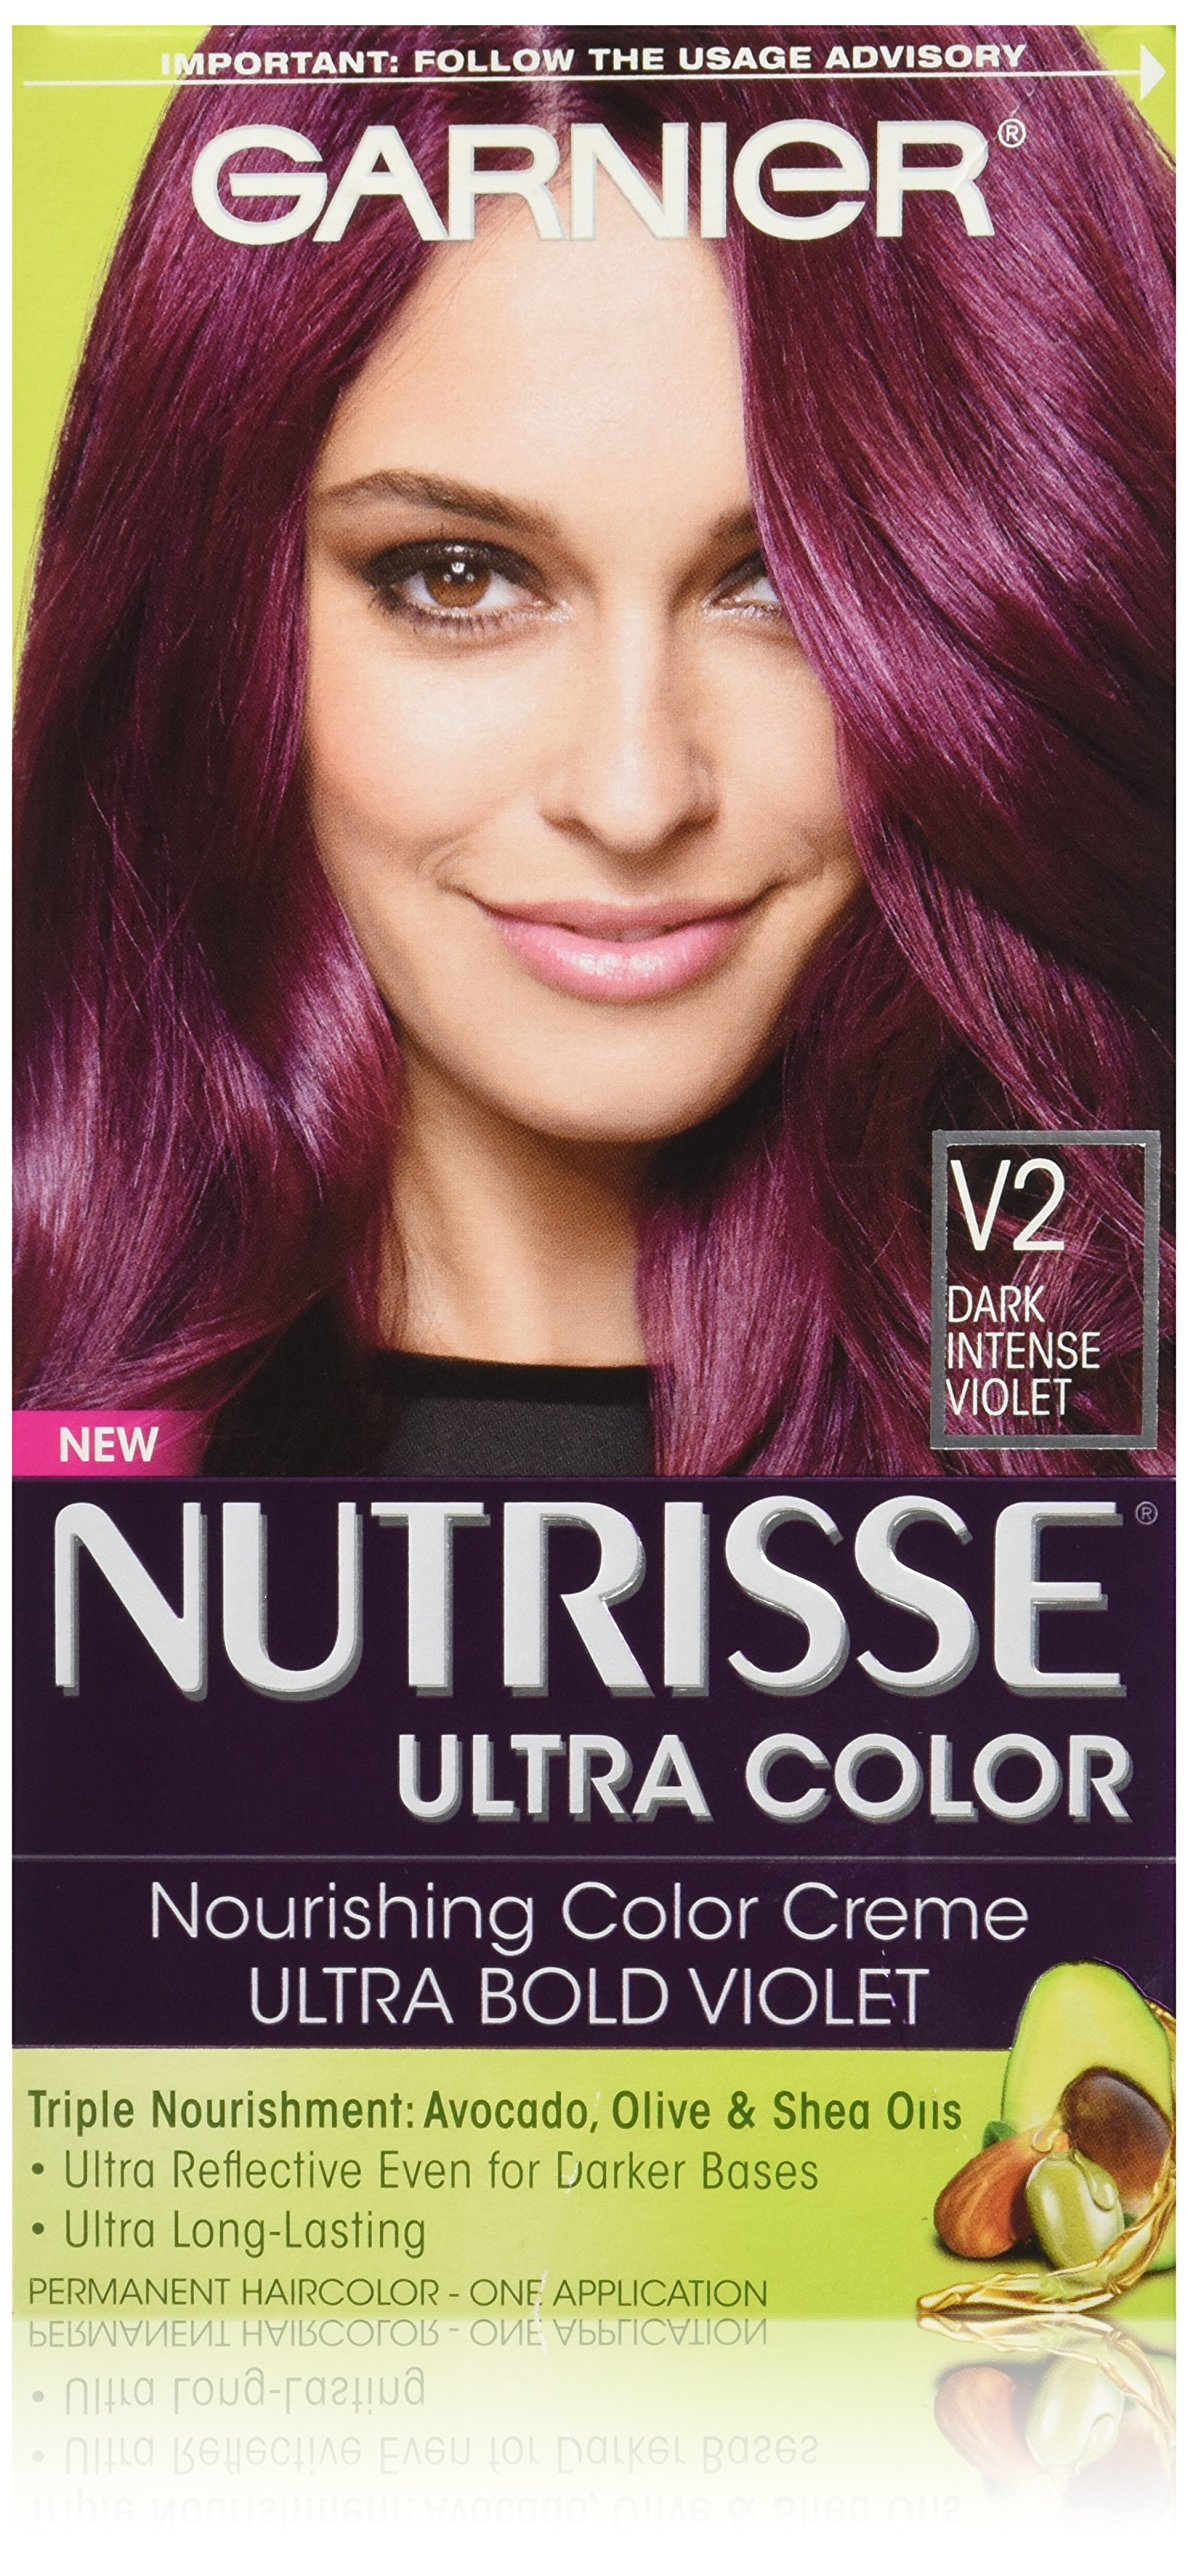 Buy Garnier Nutrisse Ultra Color Nourishing Hair Color Creme V2